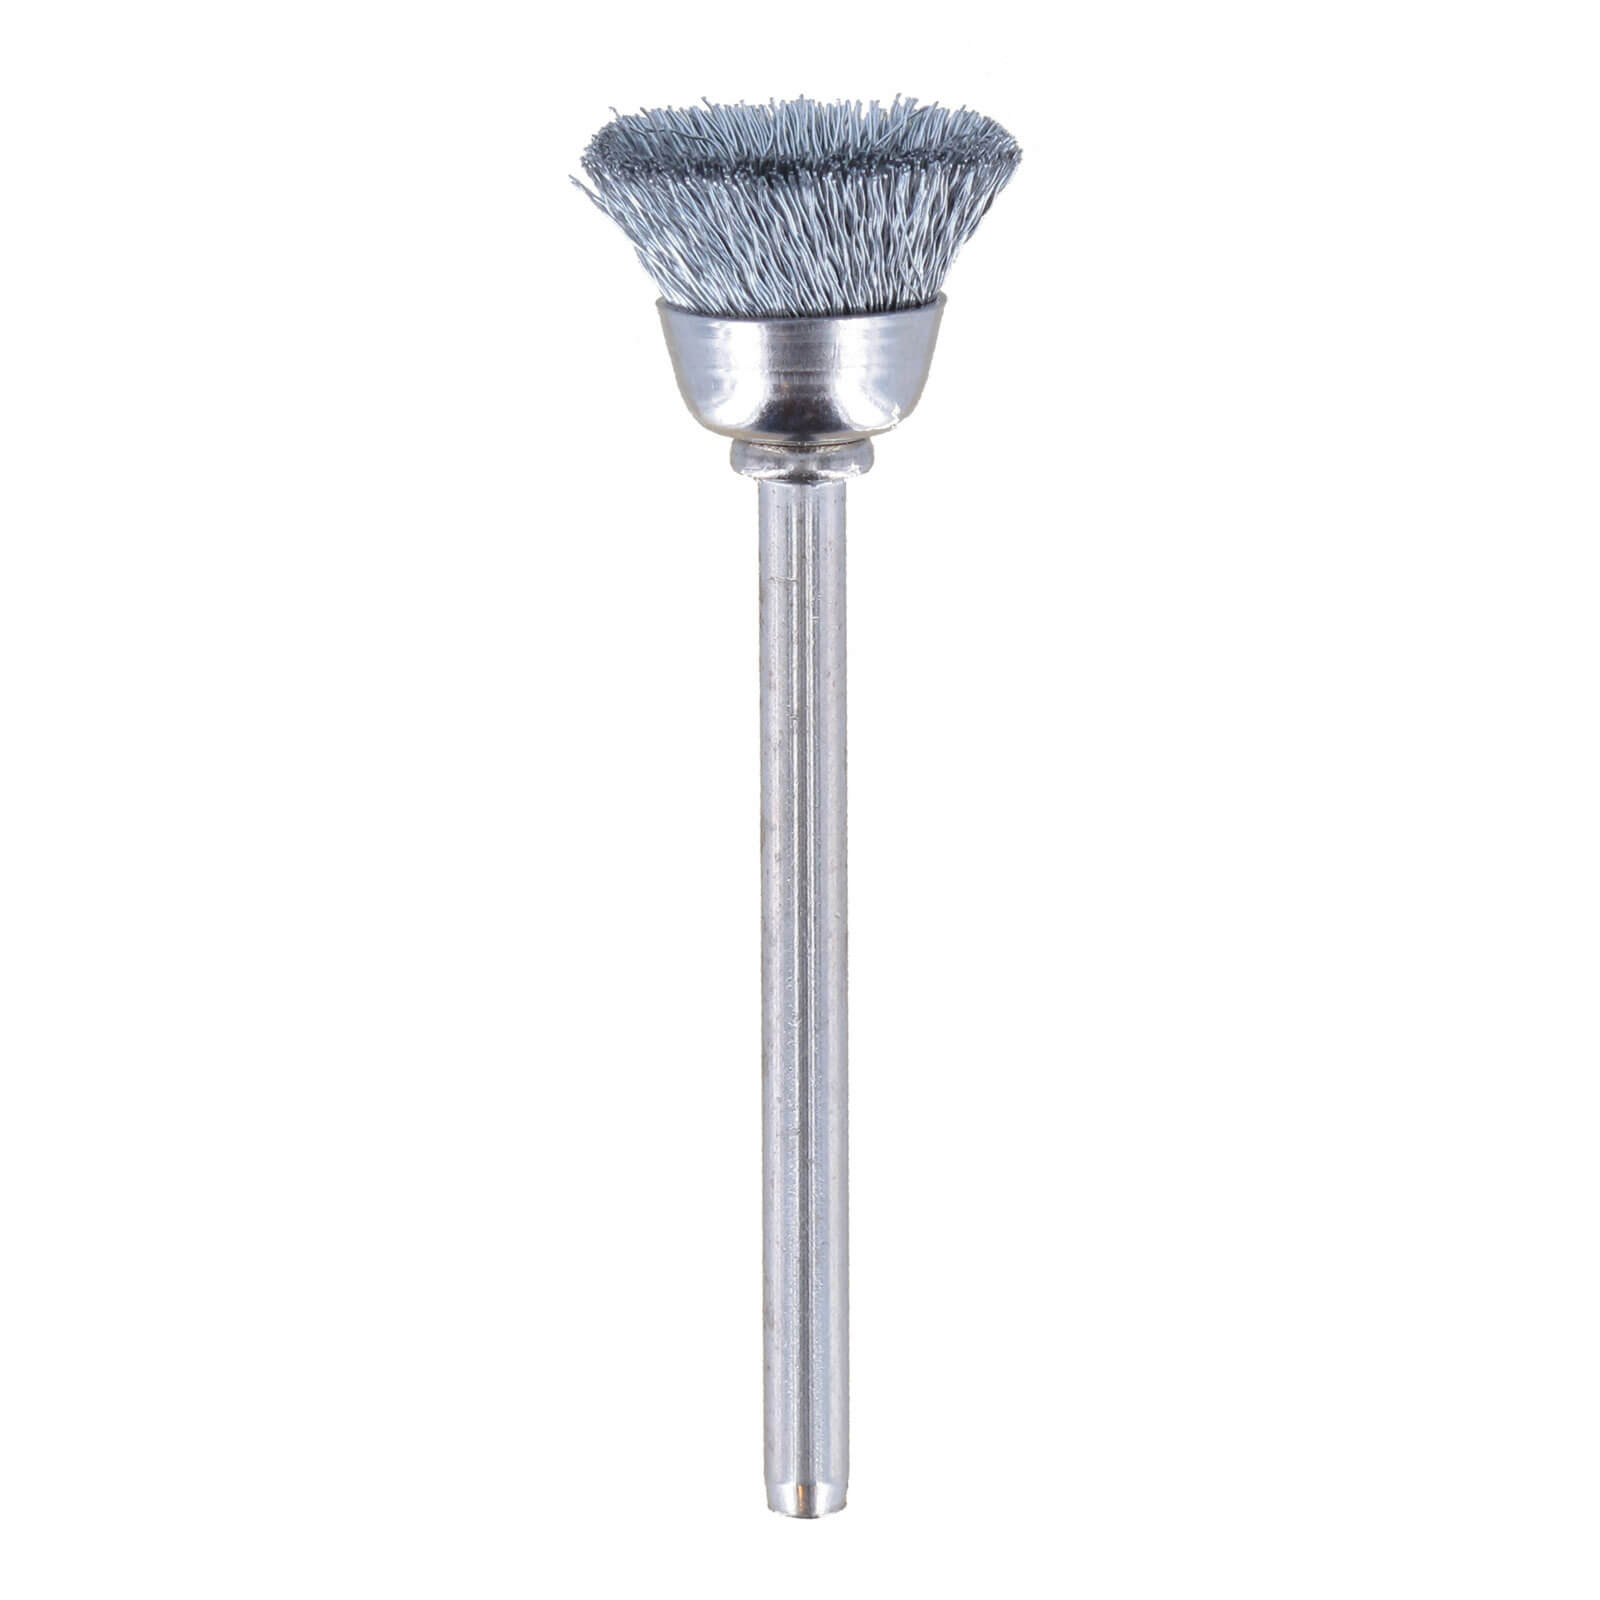 Image of Dremel 442 Carbon Steel Wire Cup Brush 13mm Pack of 2